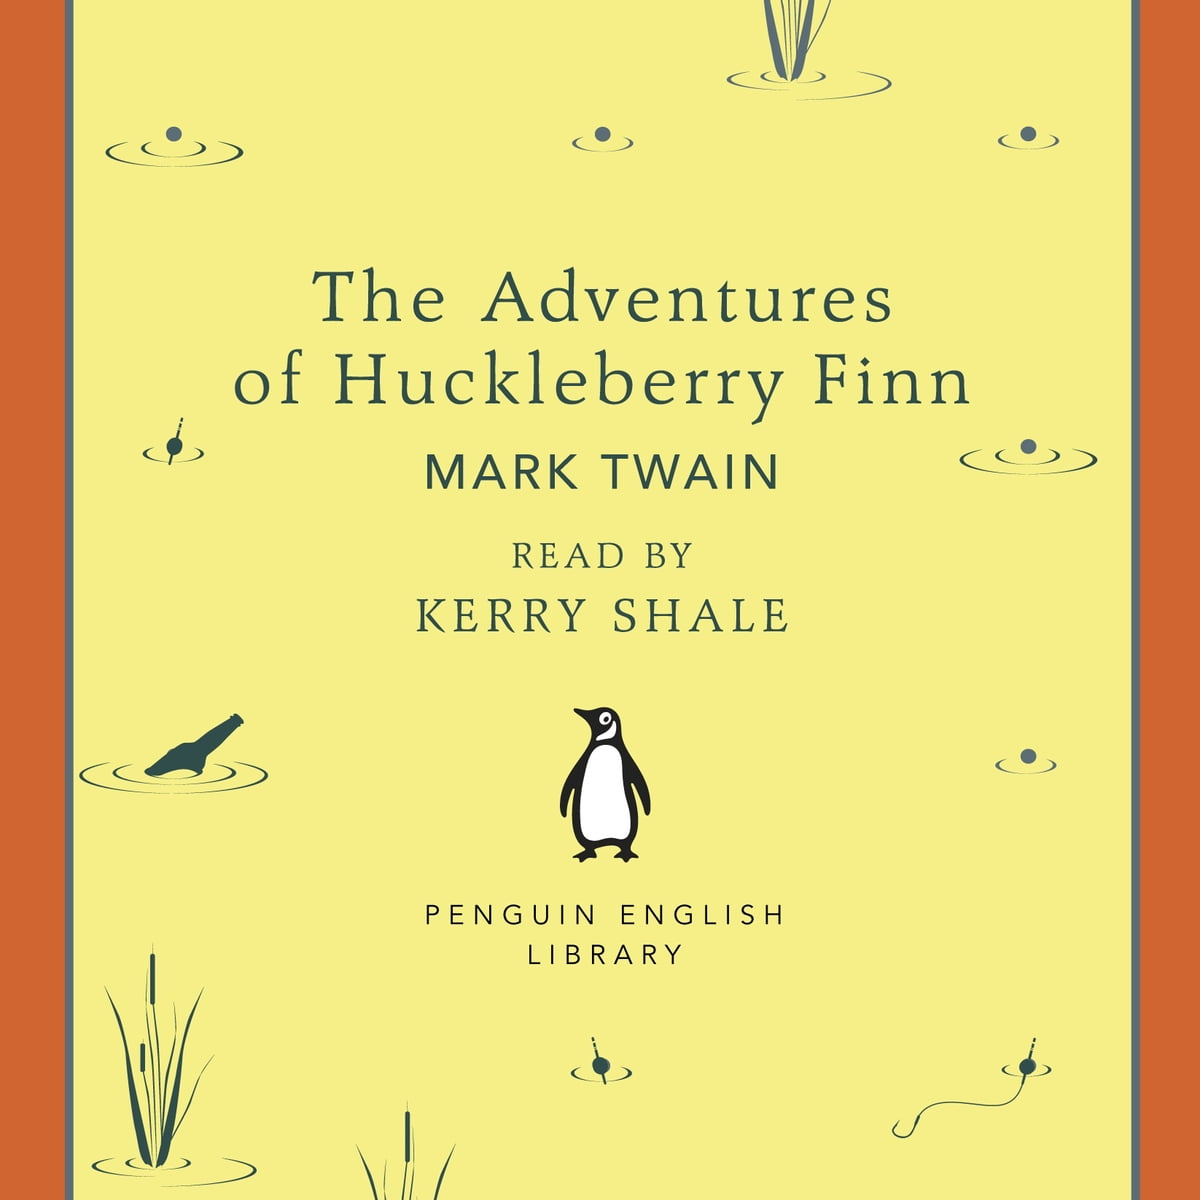 superstitions in the adventures of huckleberry finn by mark twain